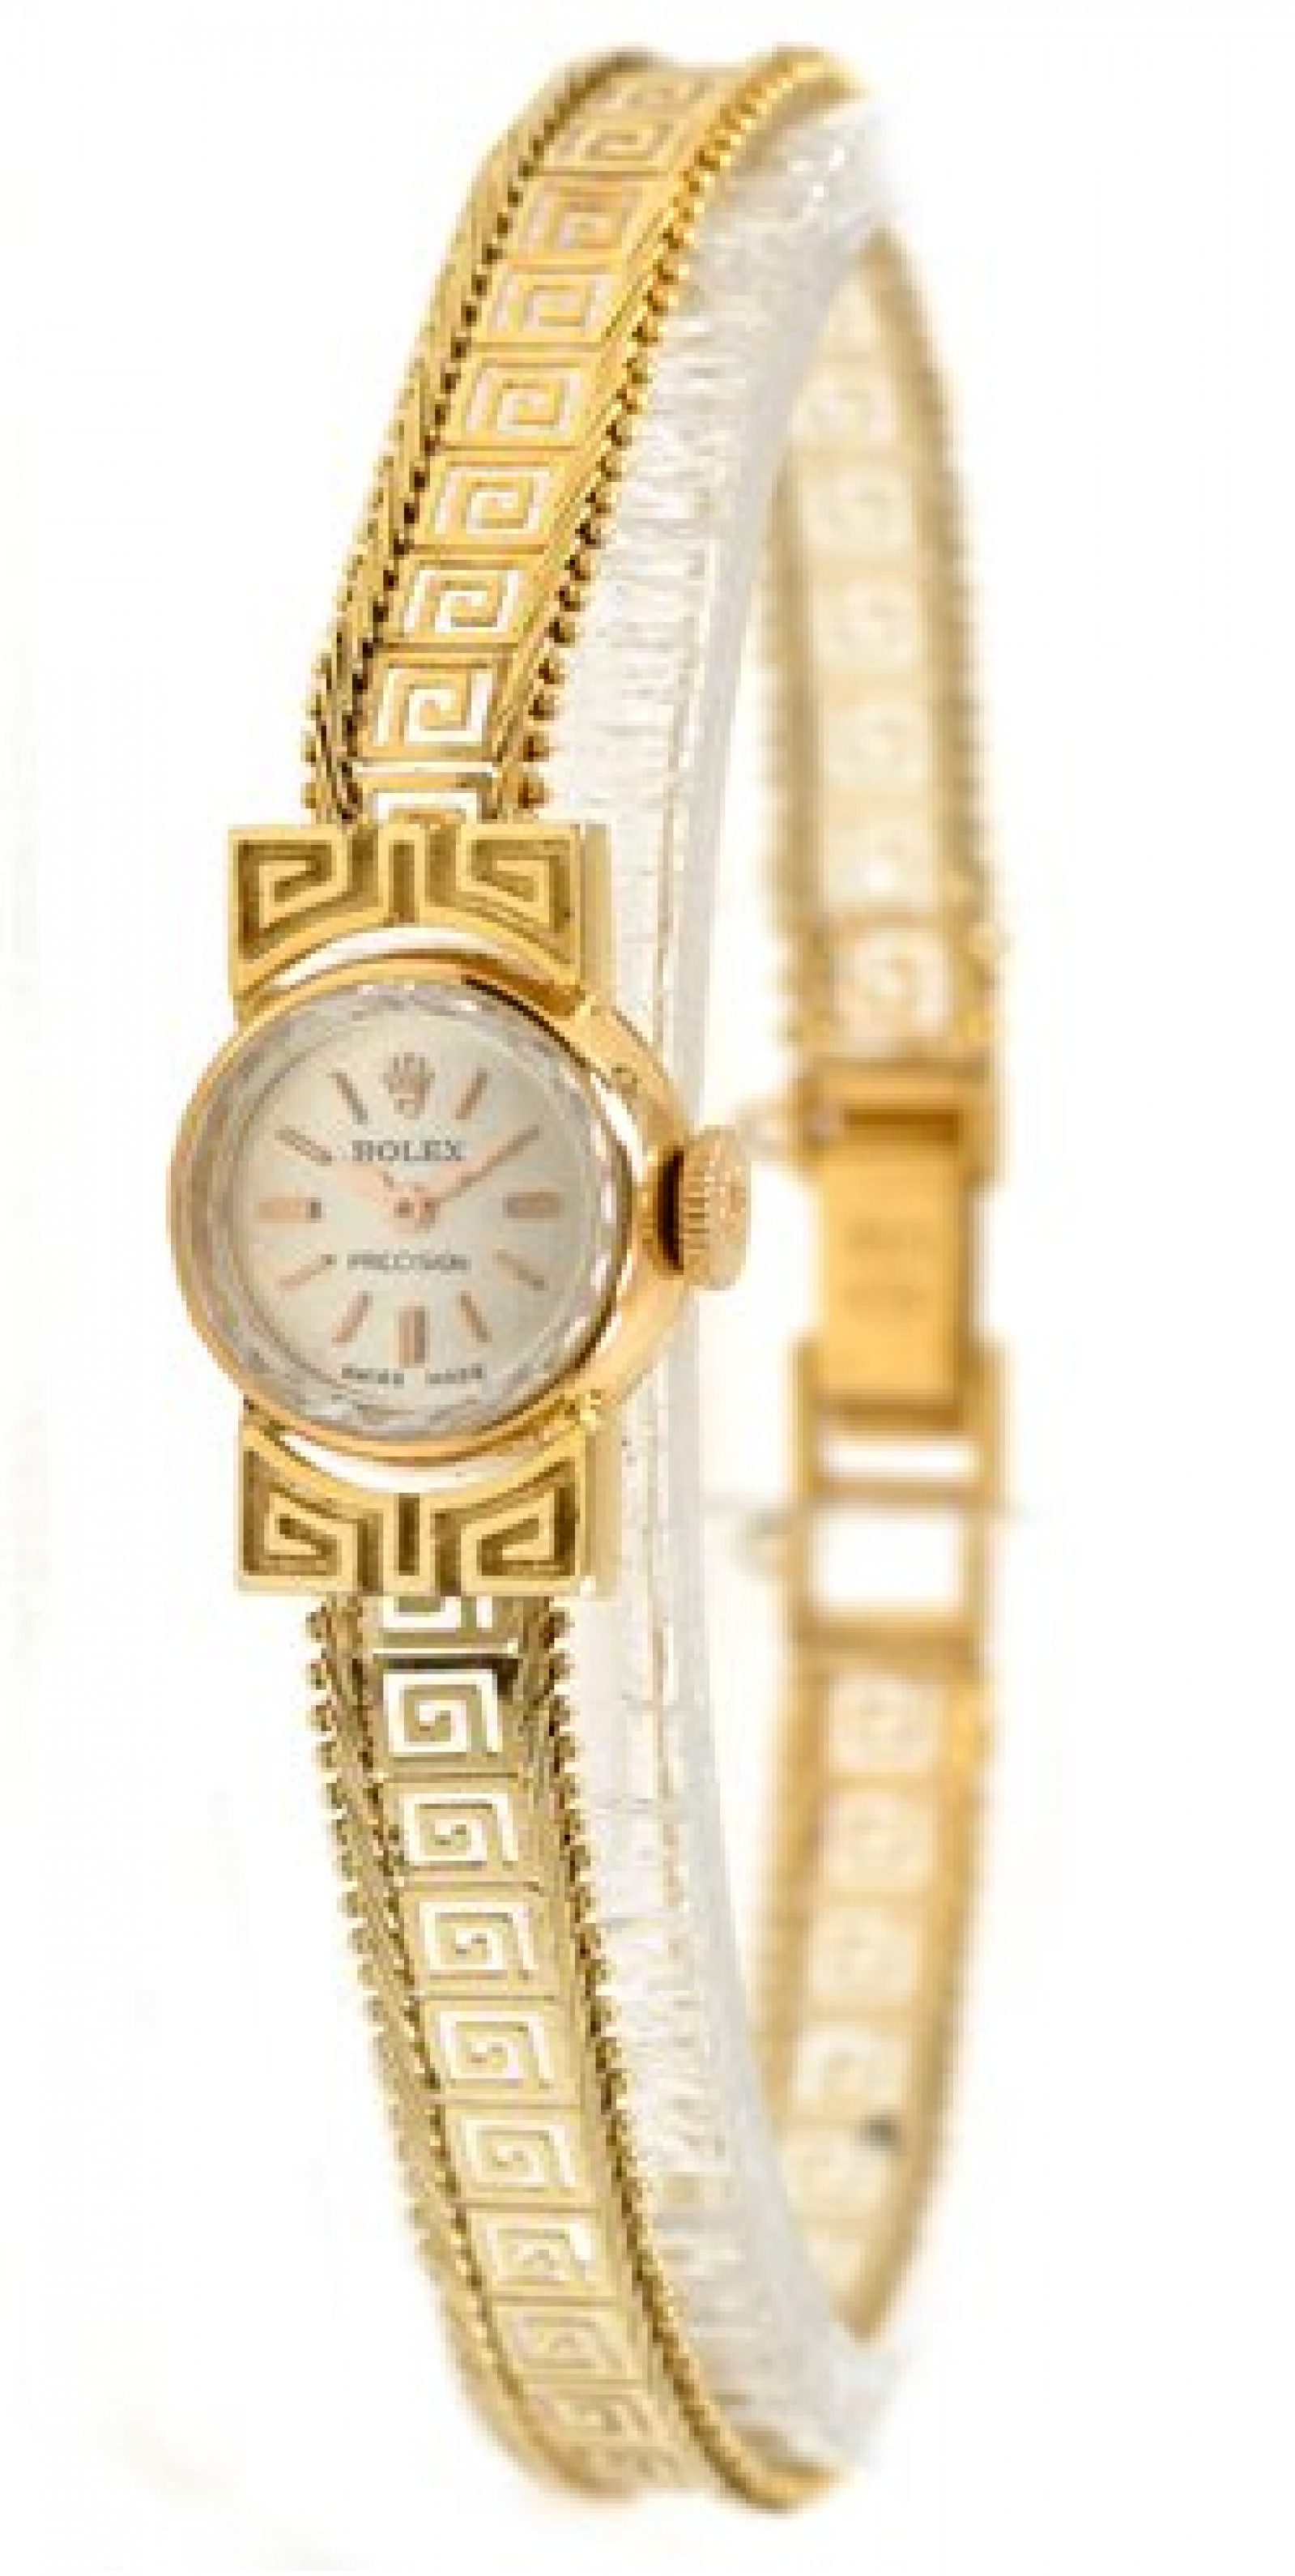 Vintage Rolex Precision 2113 Gold with Silver Dial